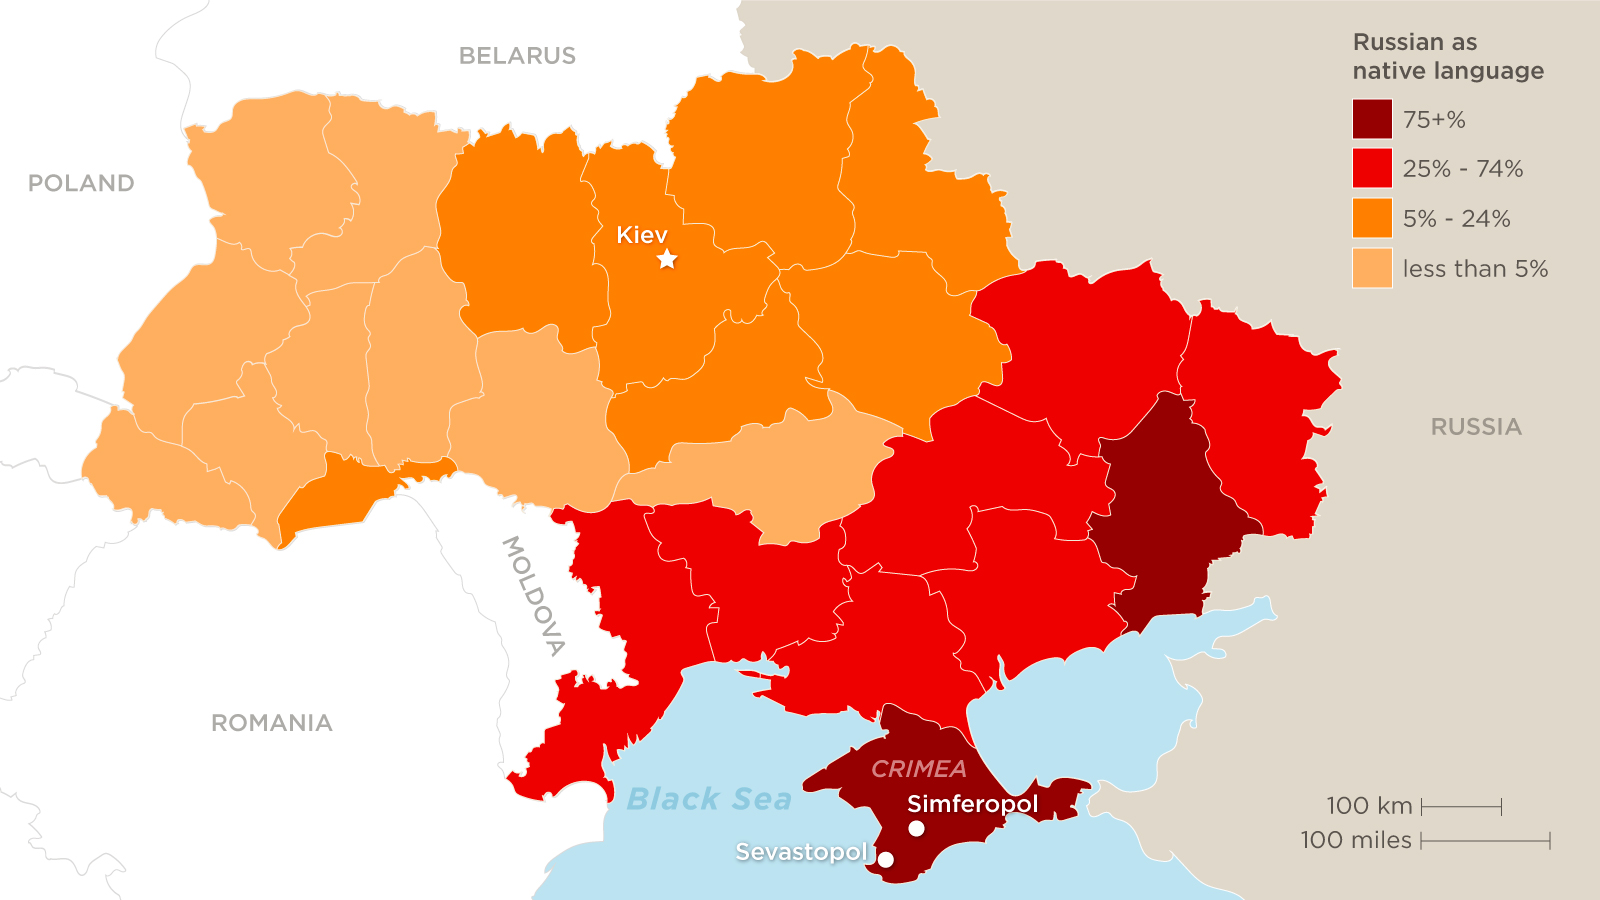 https://www.maurizioblondet.it/wp-content/uploads/2017/12/ukraine_map_region_language.jpg